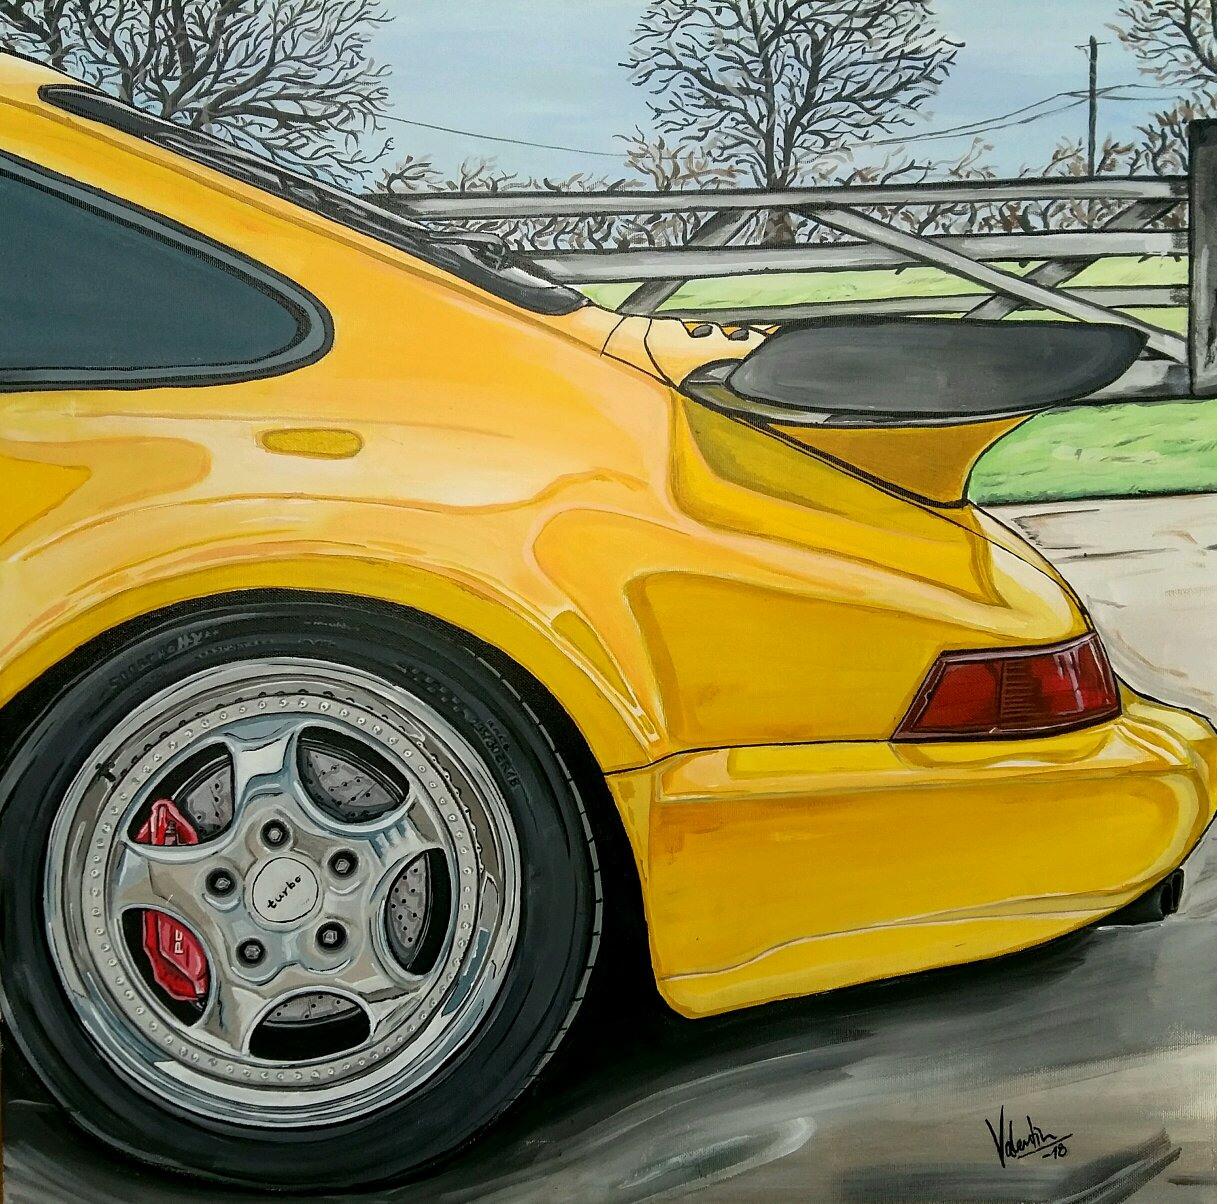 I have just finished this acrylic painting of the Porsche 911 964